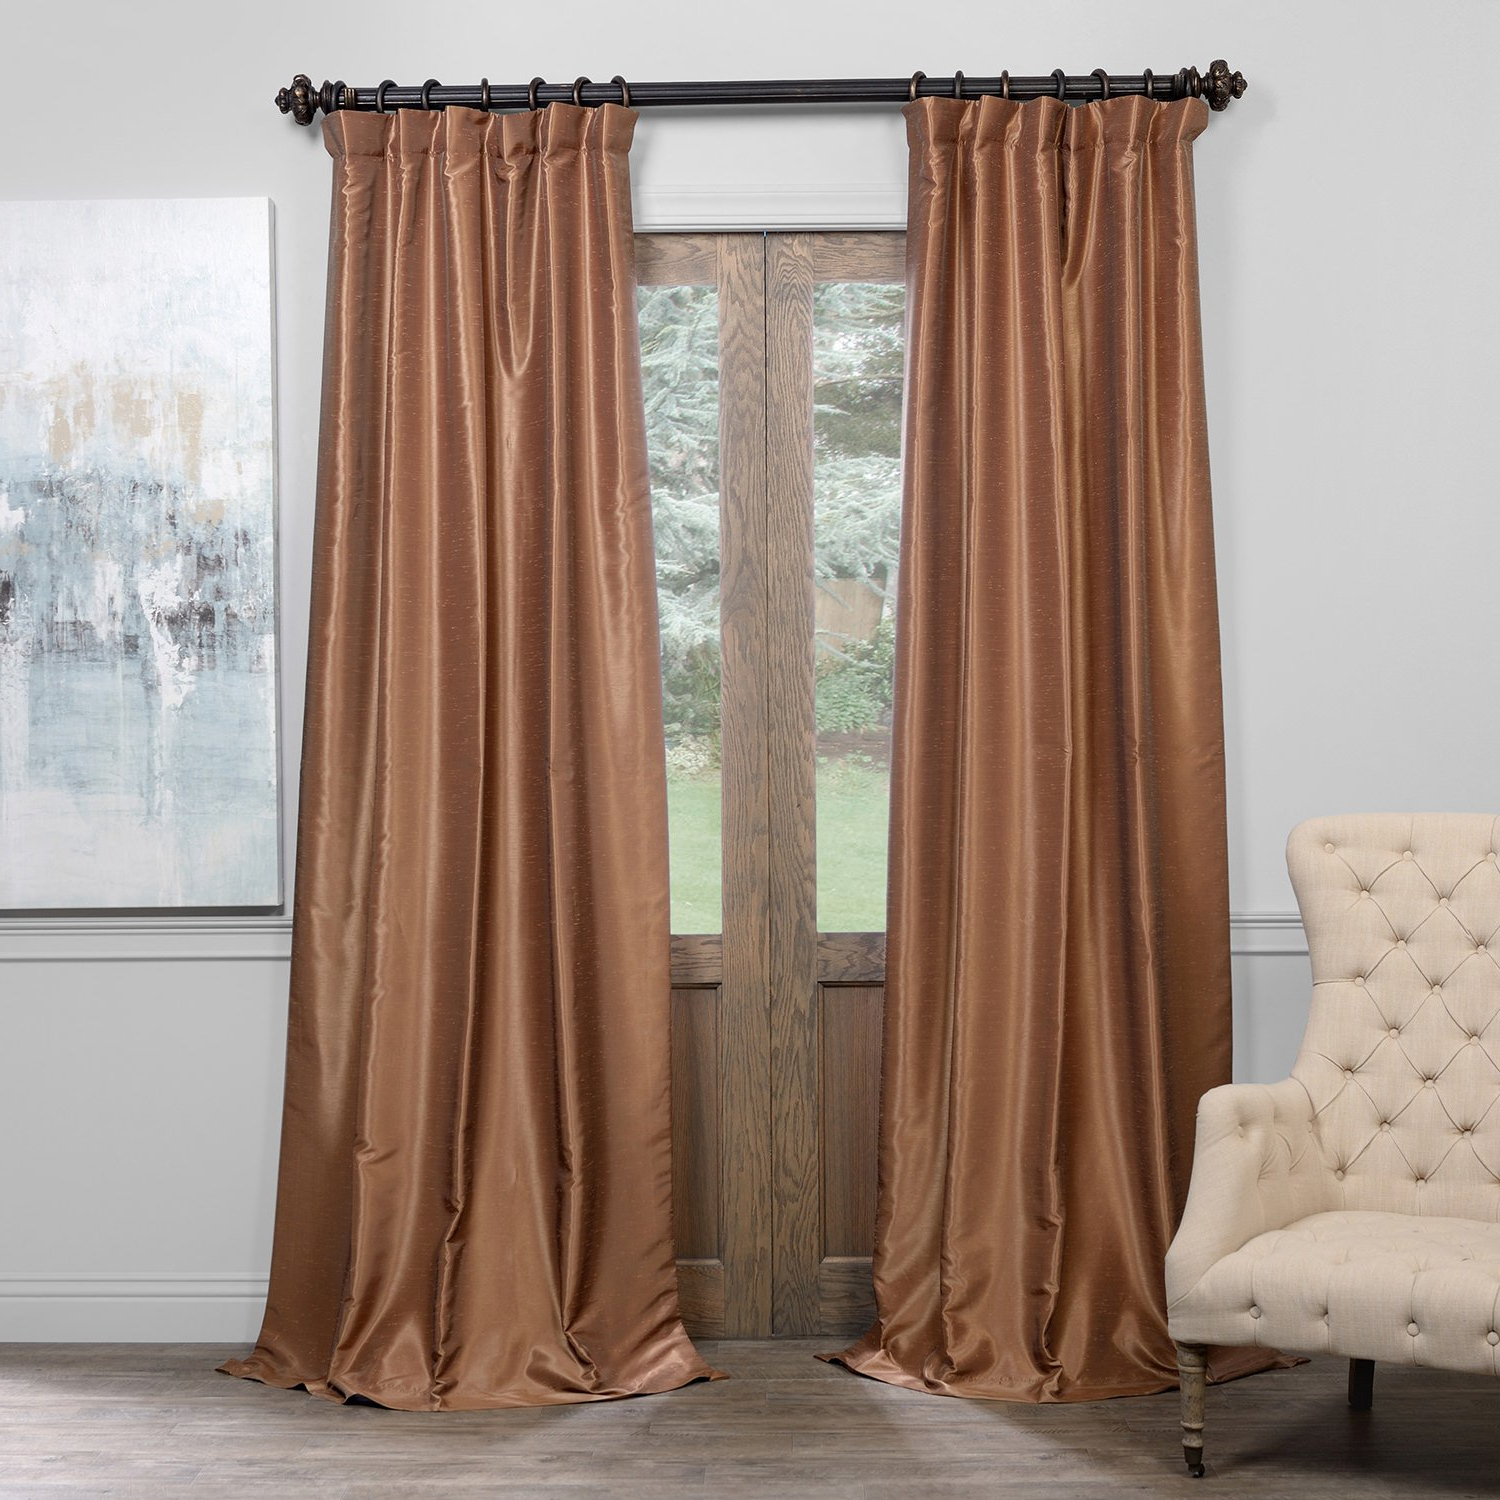 Well Liked Flax Gold Vintage Faux Textured Silk Single Curtain Panels Throughout Hpd Half Price Drapes Pdch Kbs8bo 108 Blackout Vintage Textured Faux Dupioni Curtain, Flax Gold, 50 X (View 10 of 23)